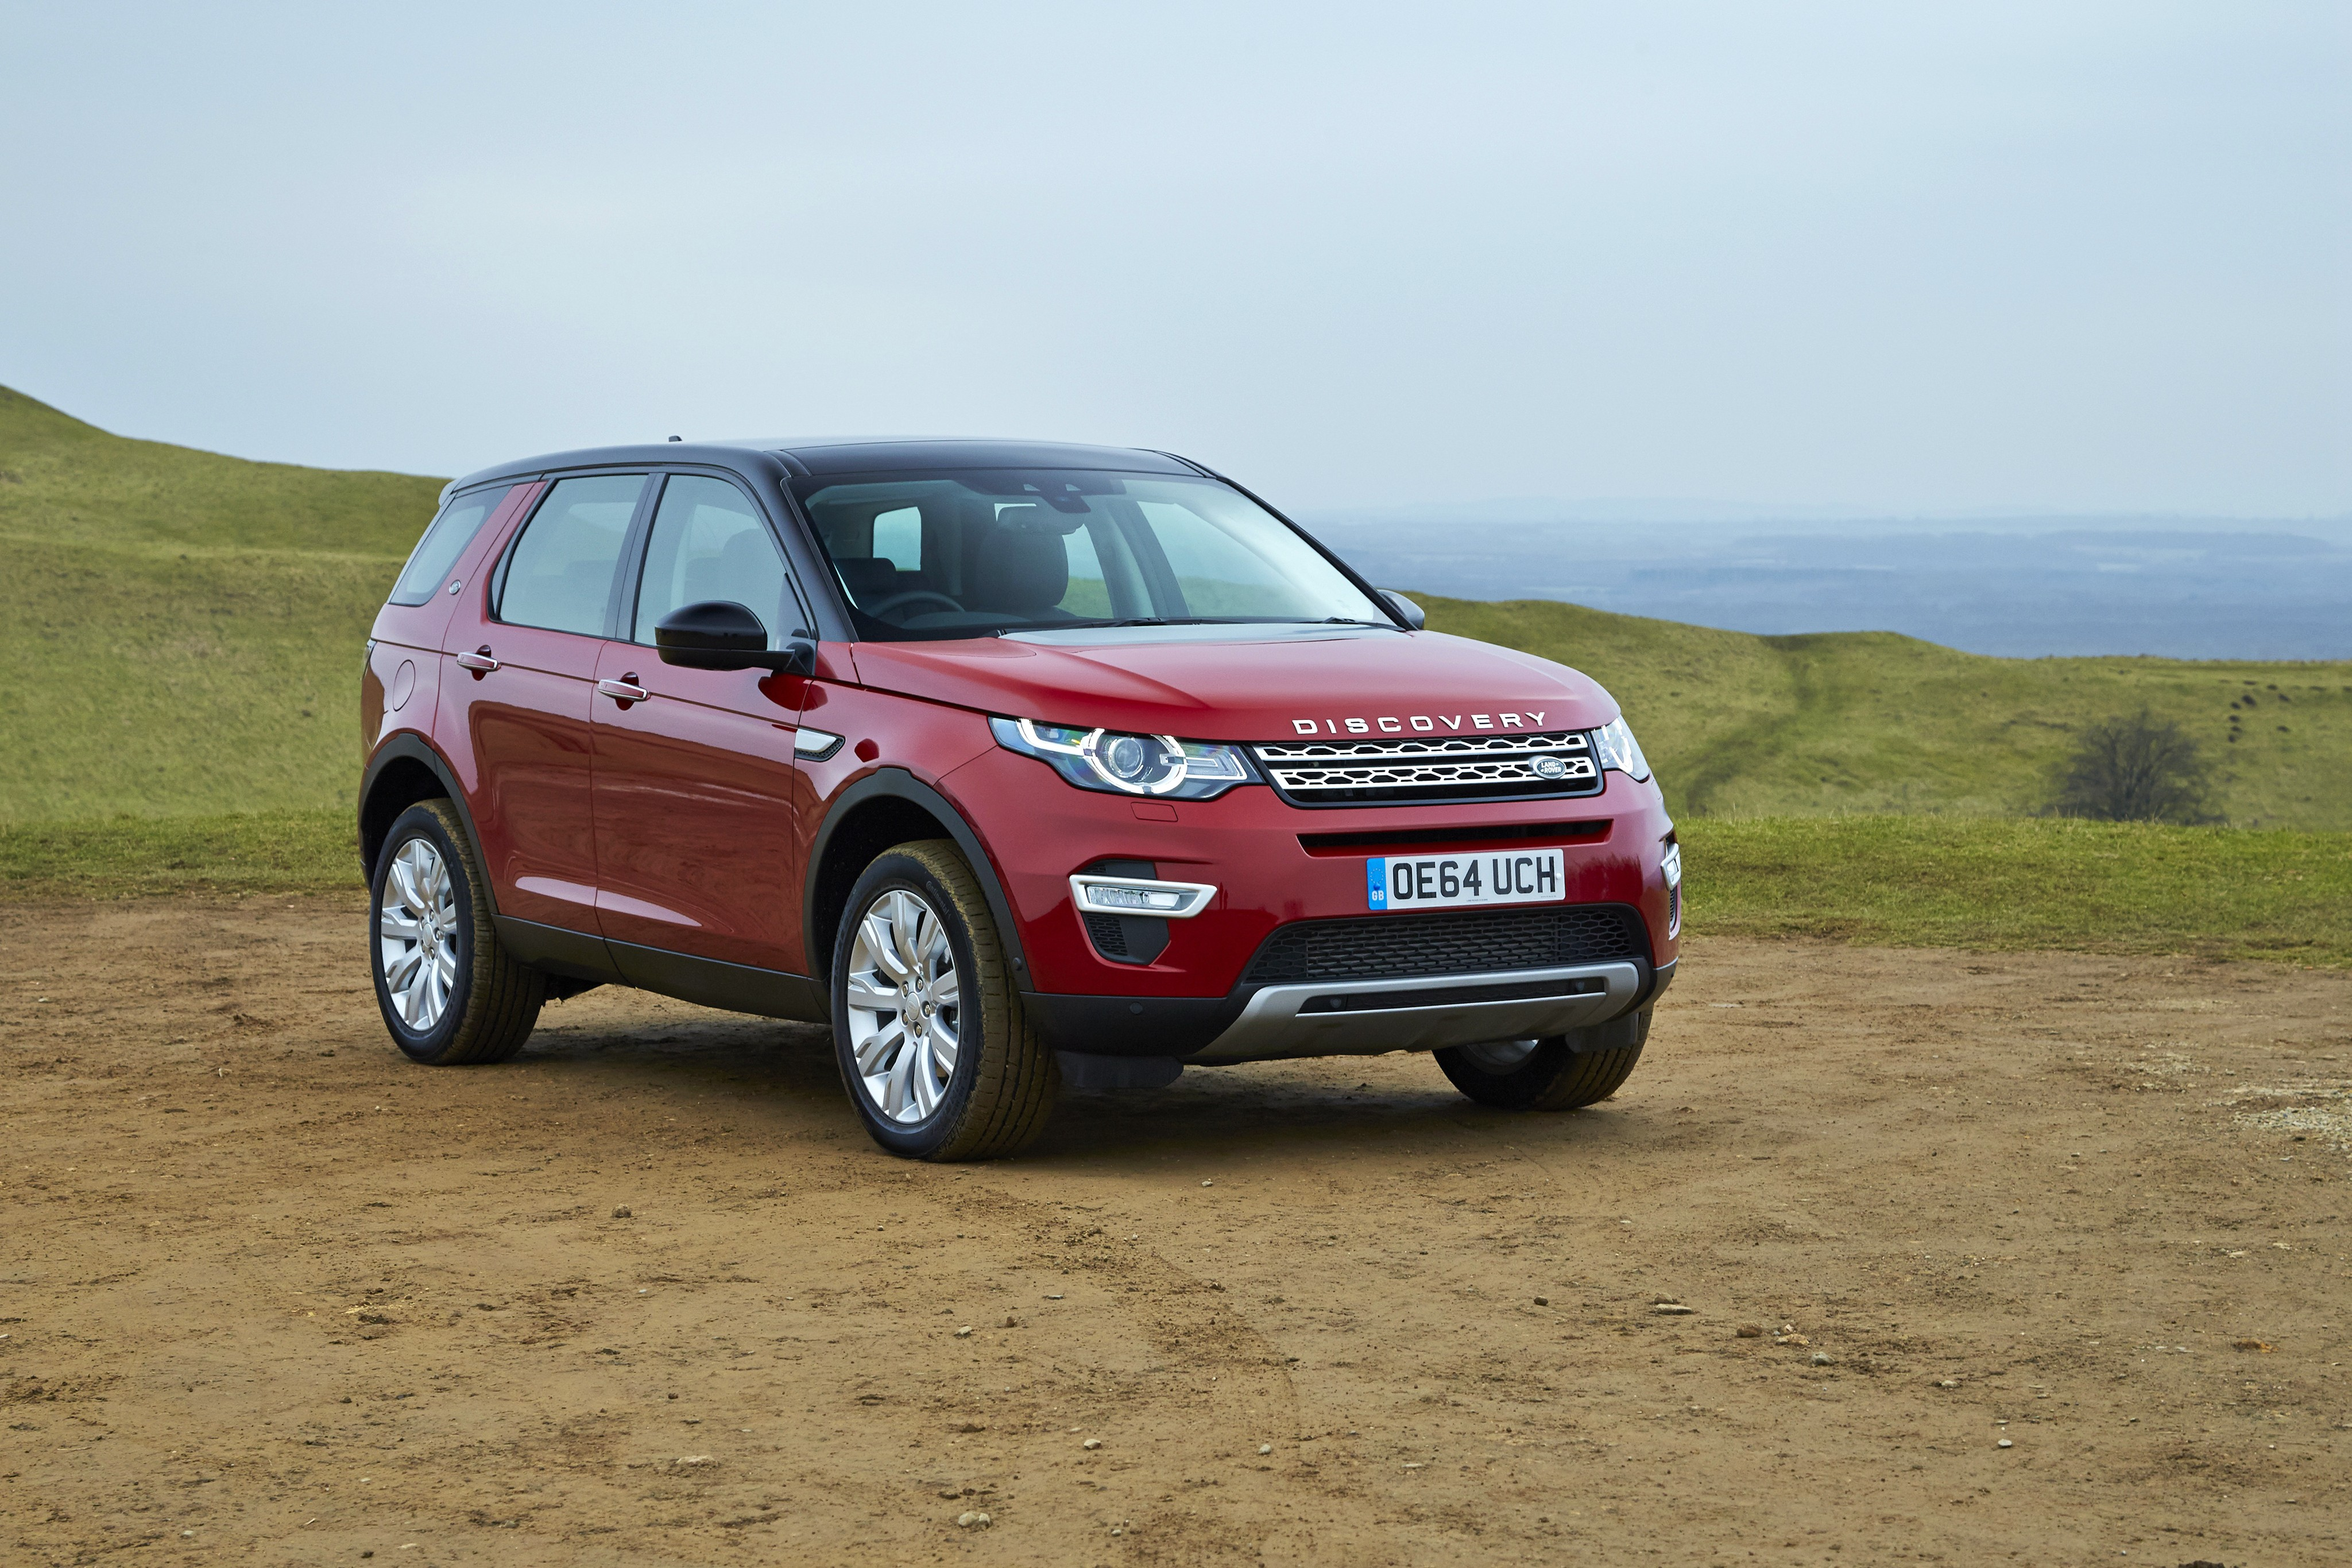 land rover discovery sport specs 2014 2015 2016 2017 autoevolution. Black Bedroom Furniture Sets. Home Design Ideas